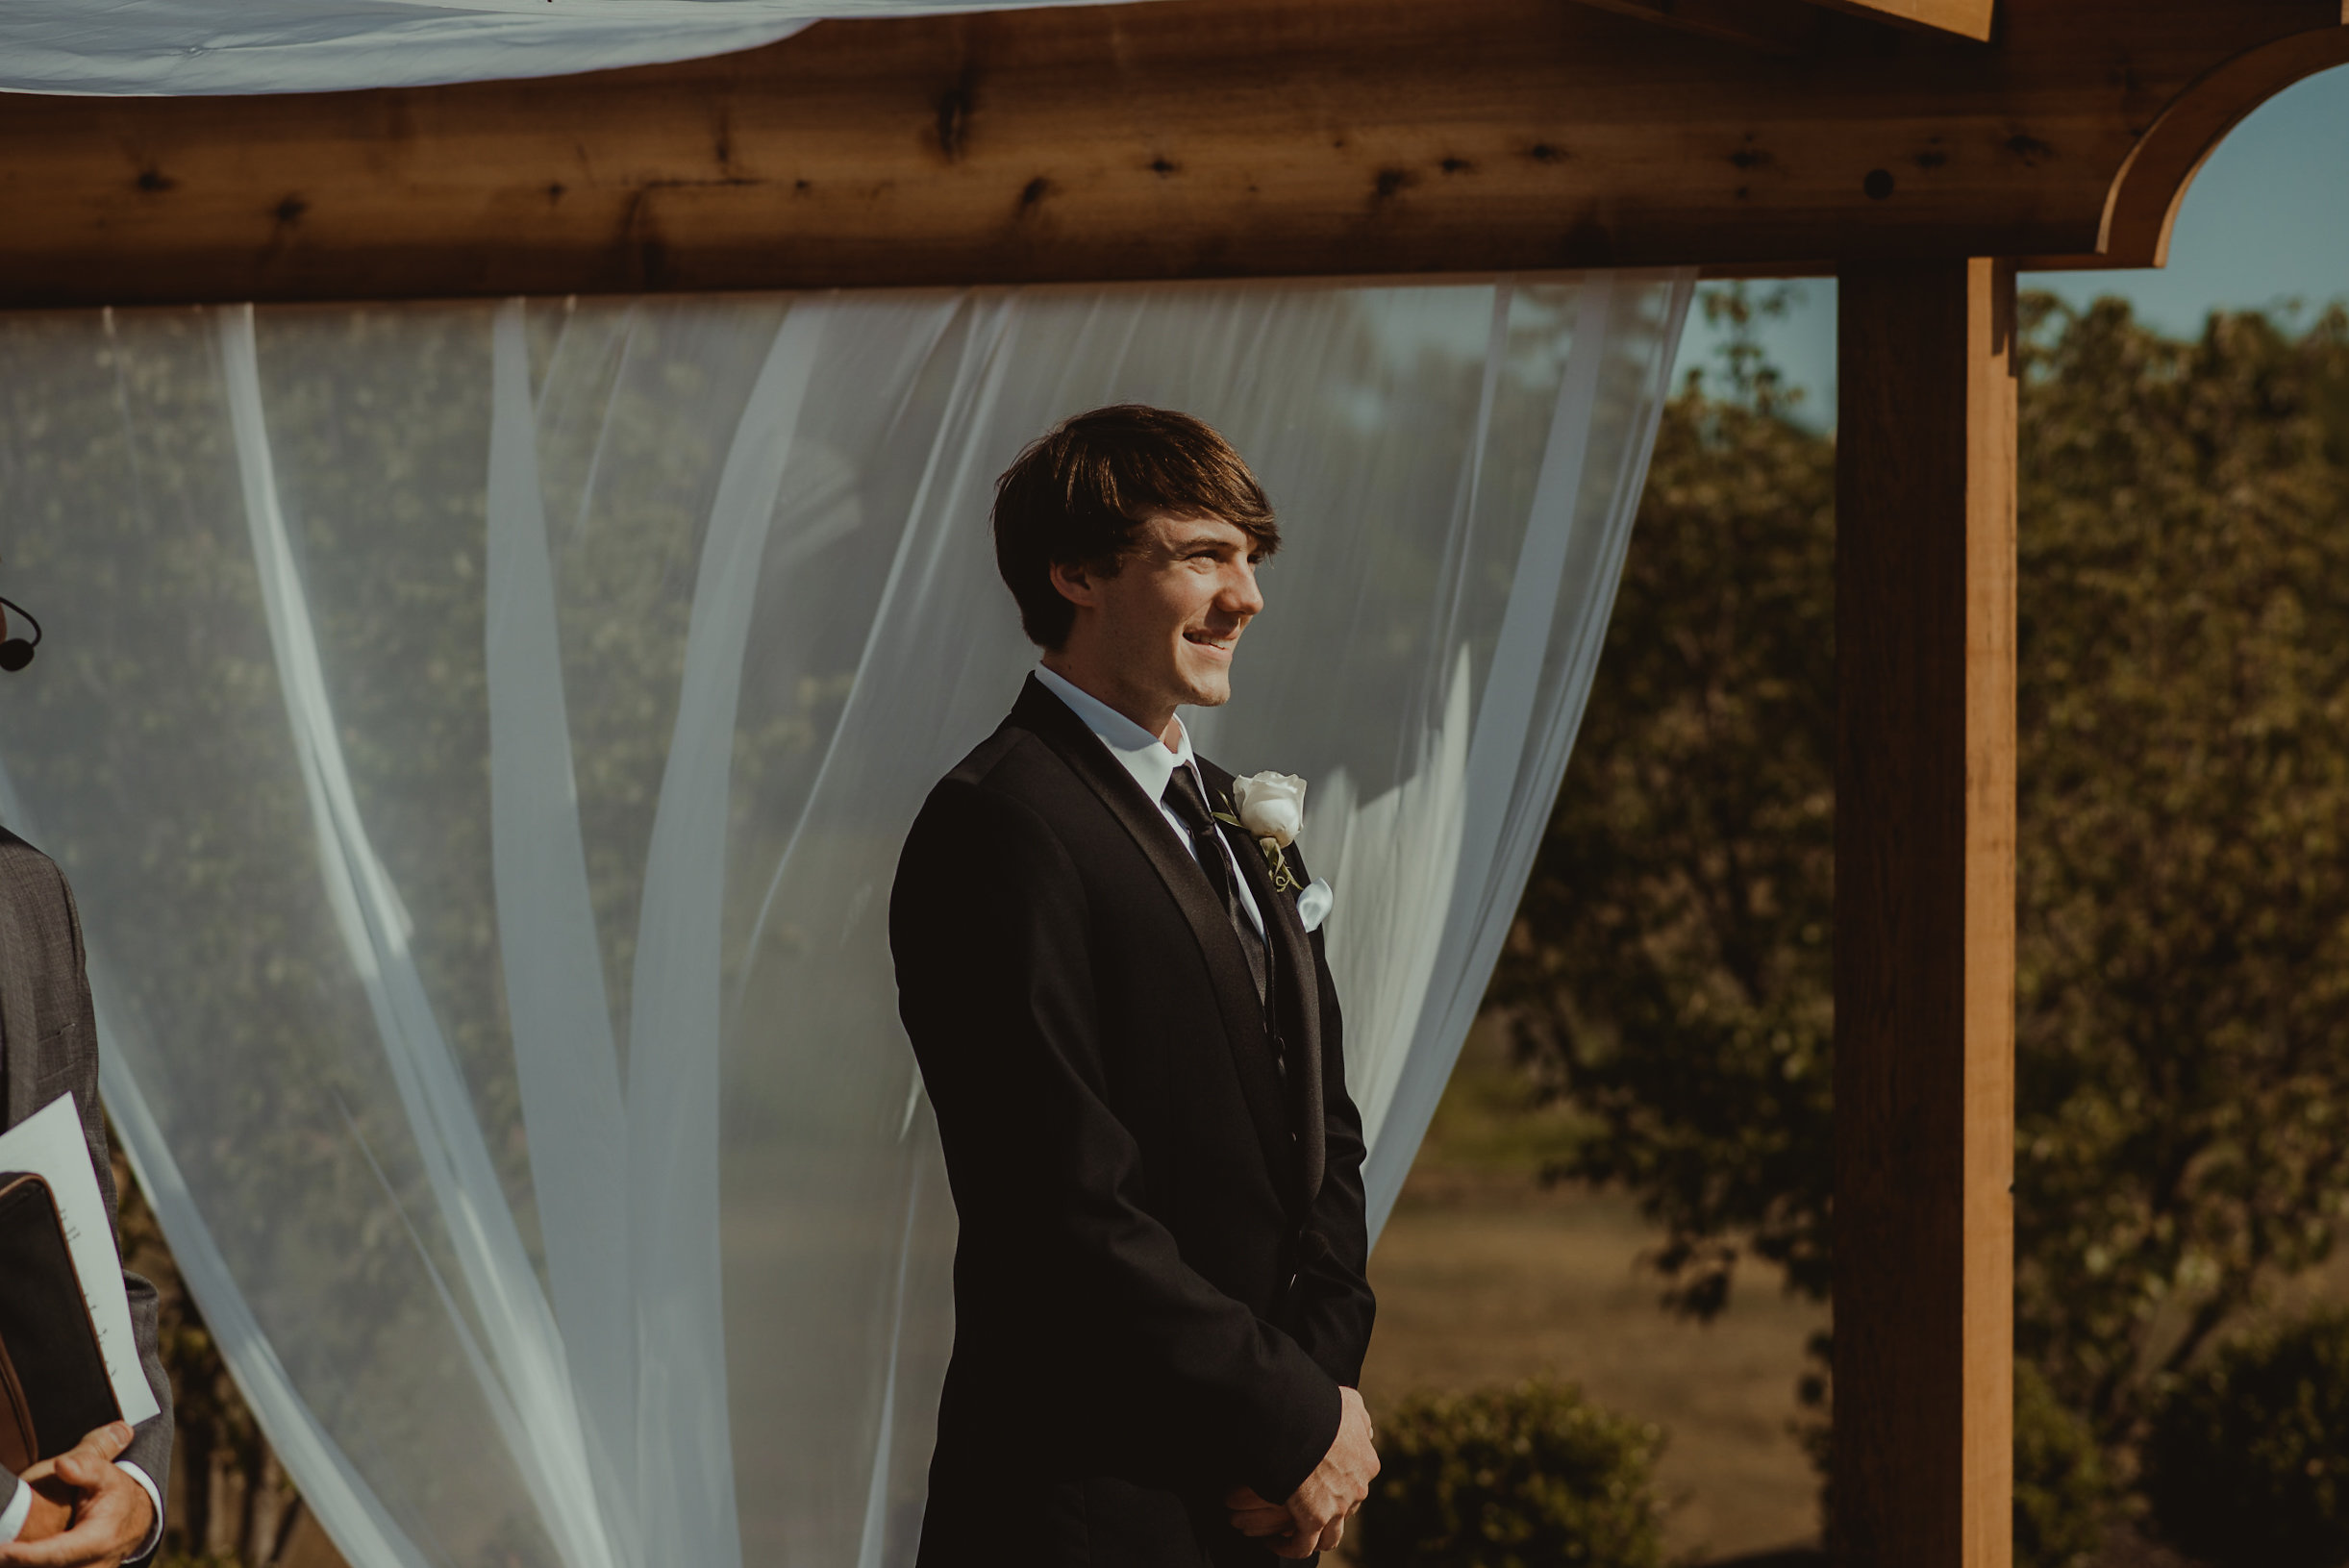 Groom standing at end of aisle